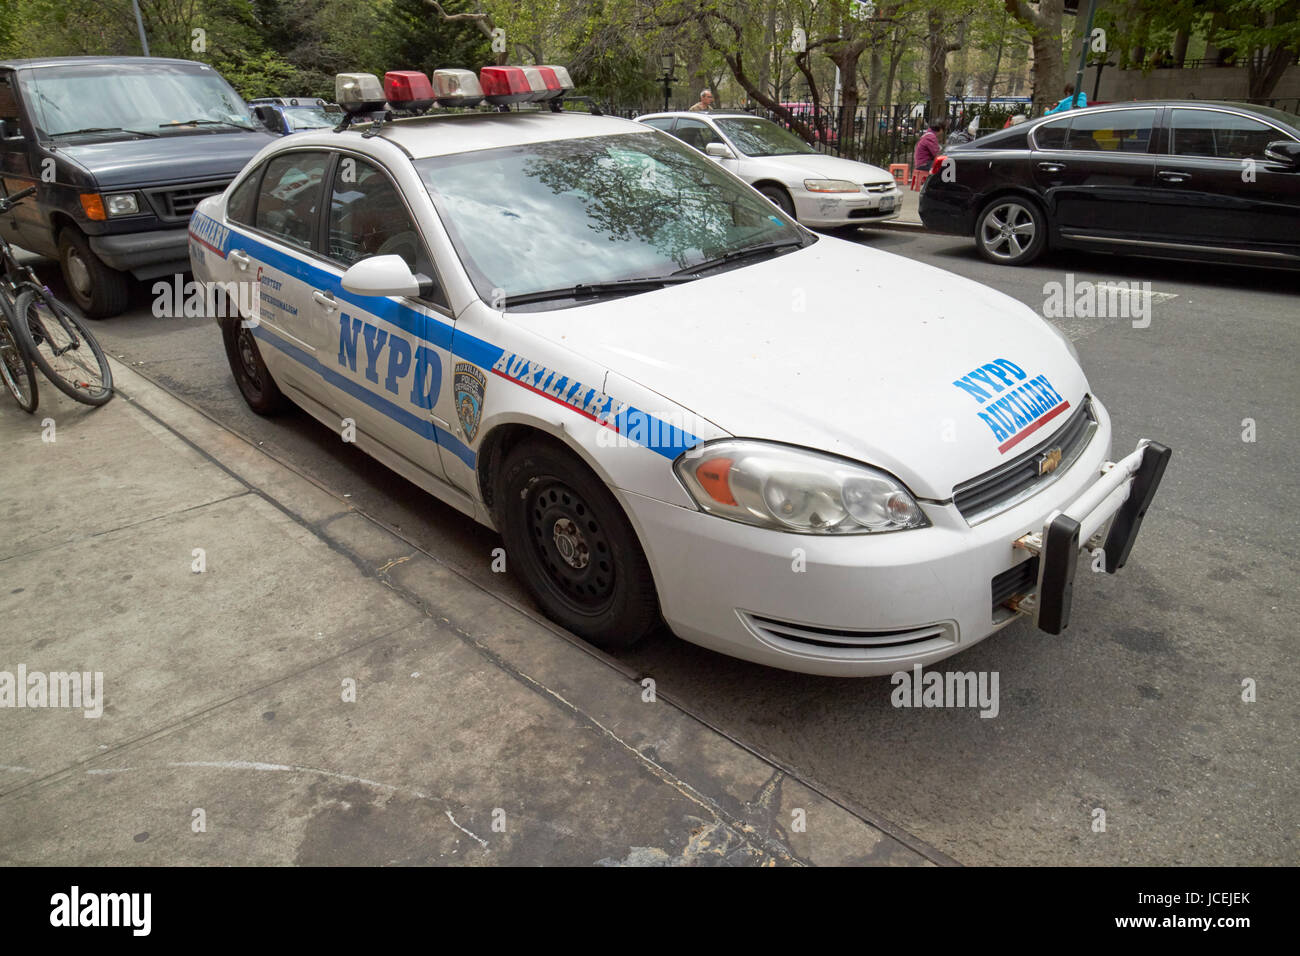 nypd auxiliary police patrol vehicle New York City USA - Stock Image